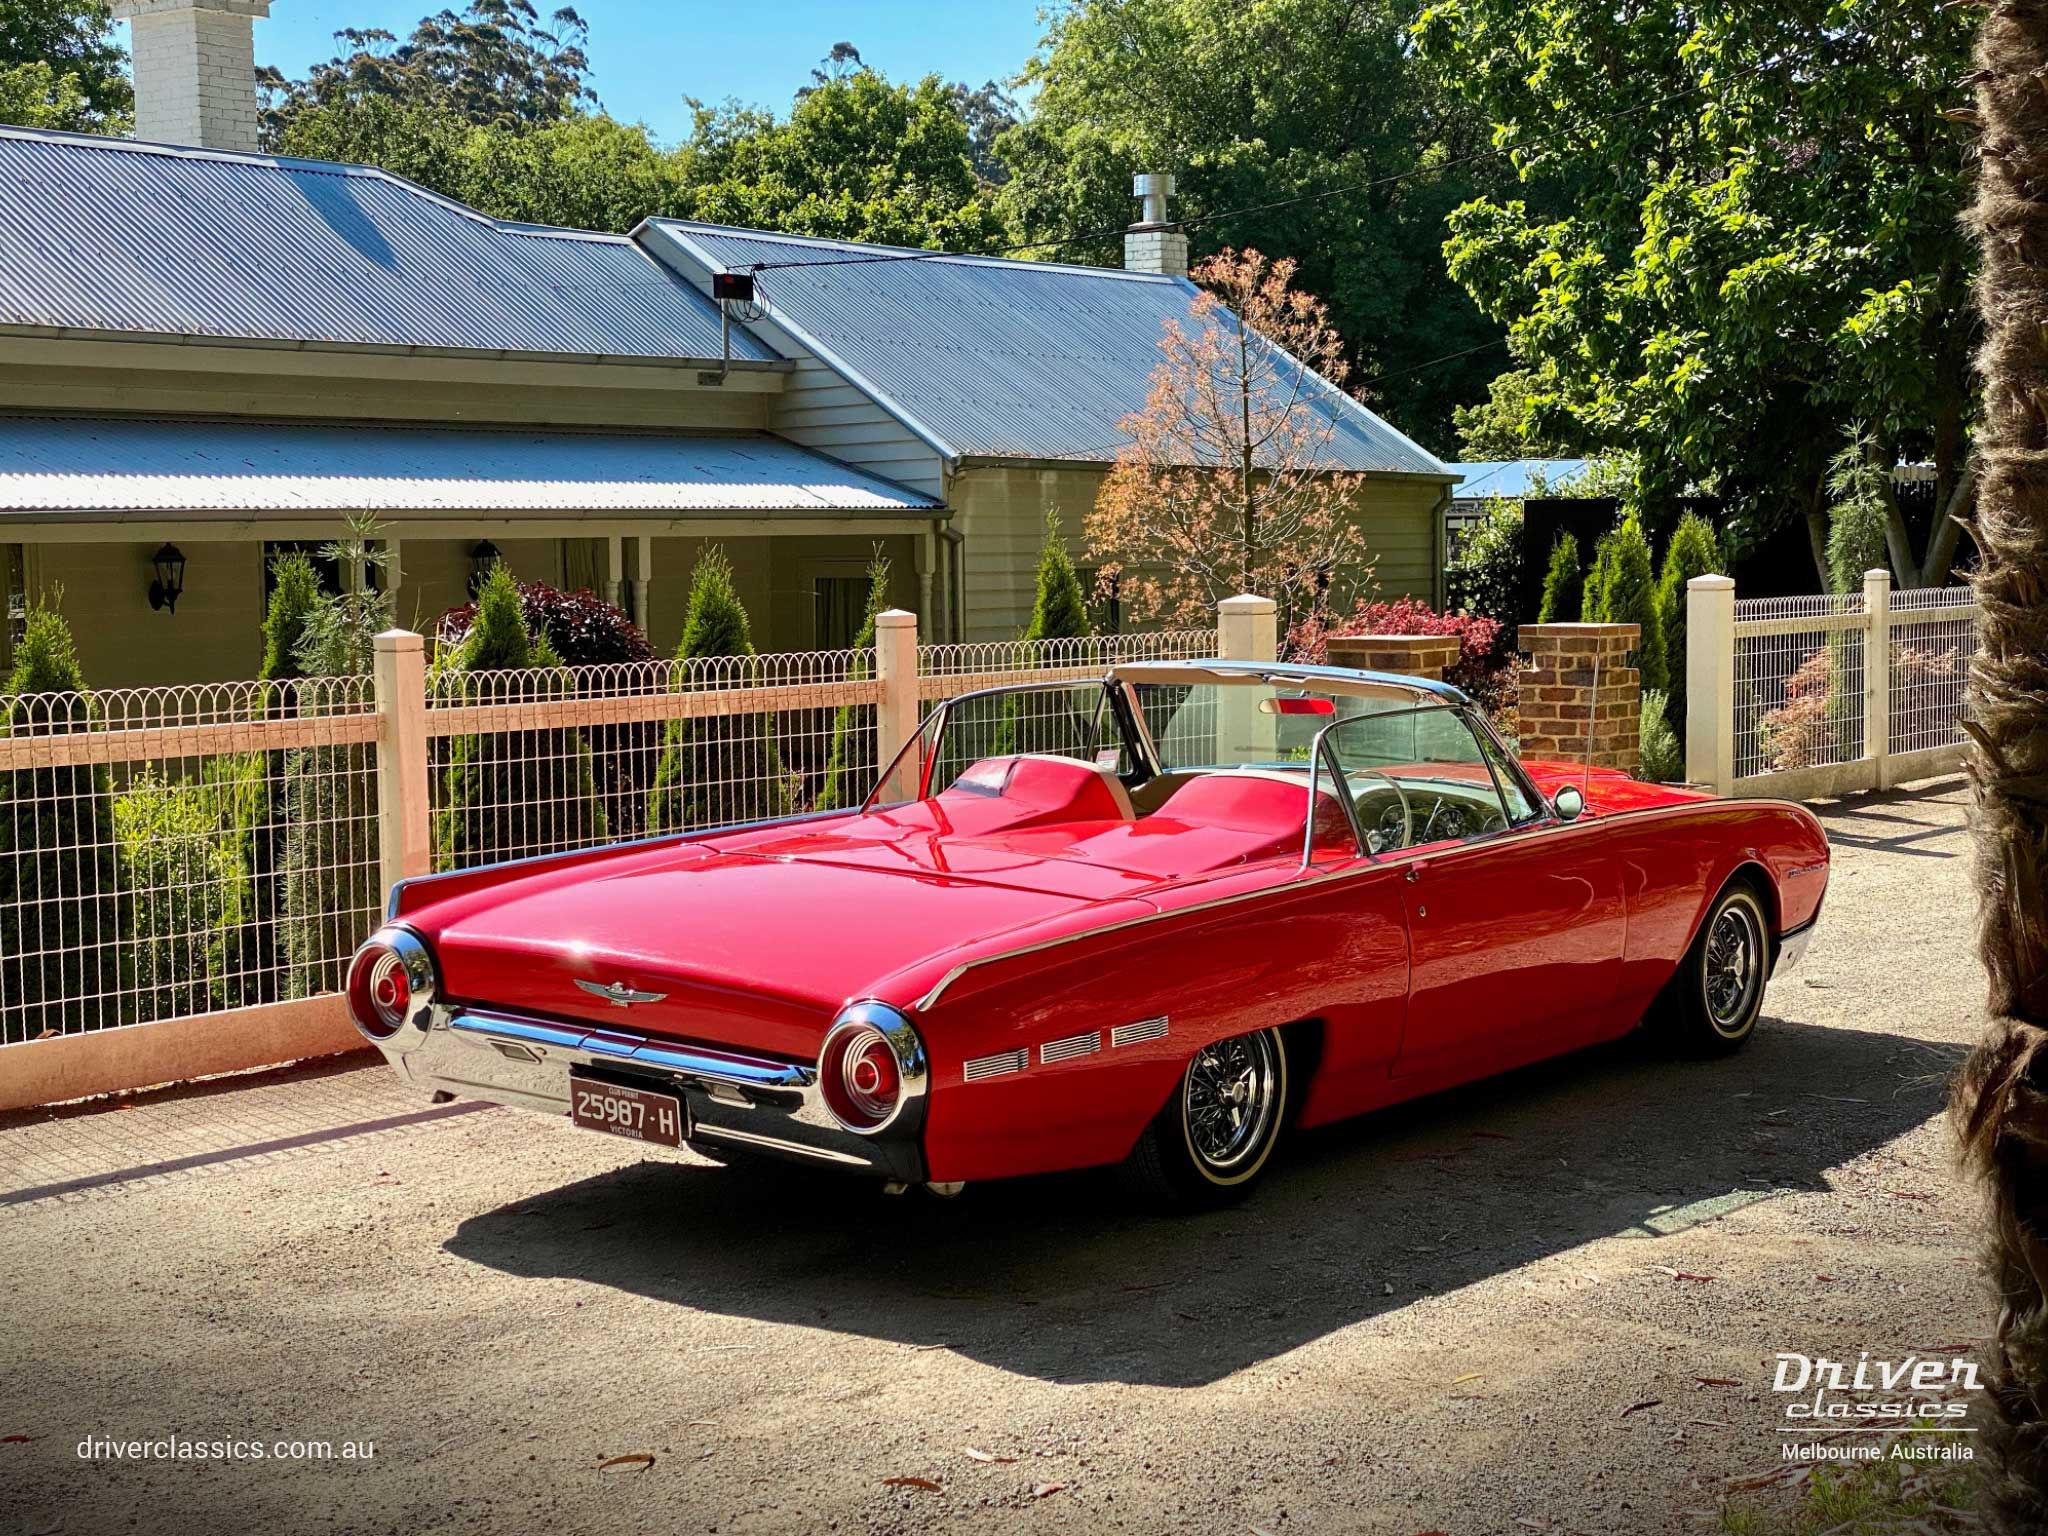 Ford Thunderbird Roadster 1962 version, back and side, Dandenong Ranges, Photo taken Dec 2019